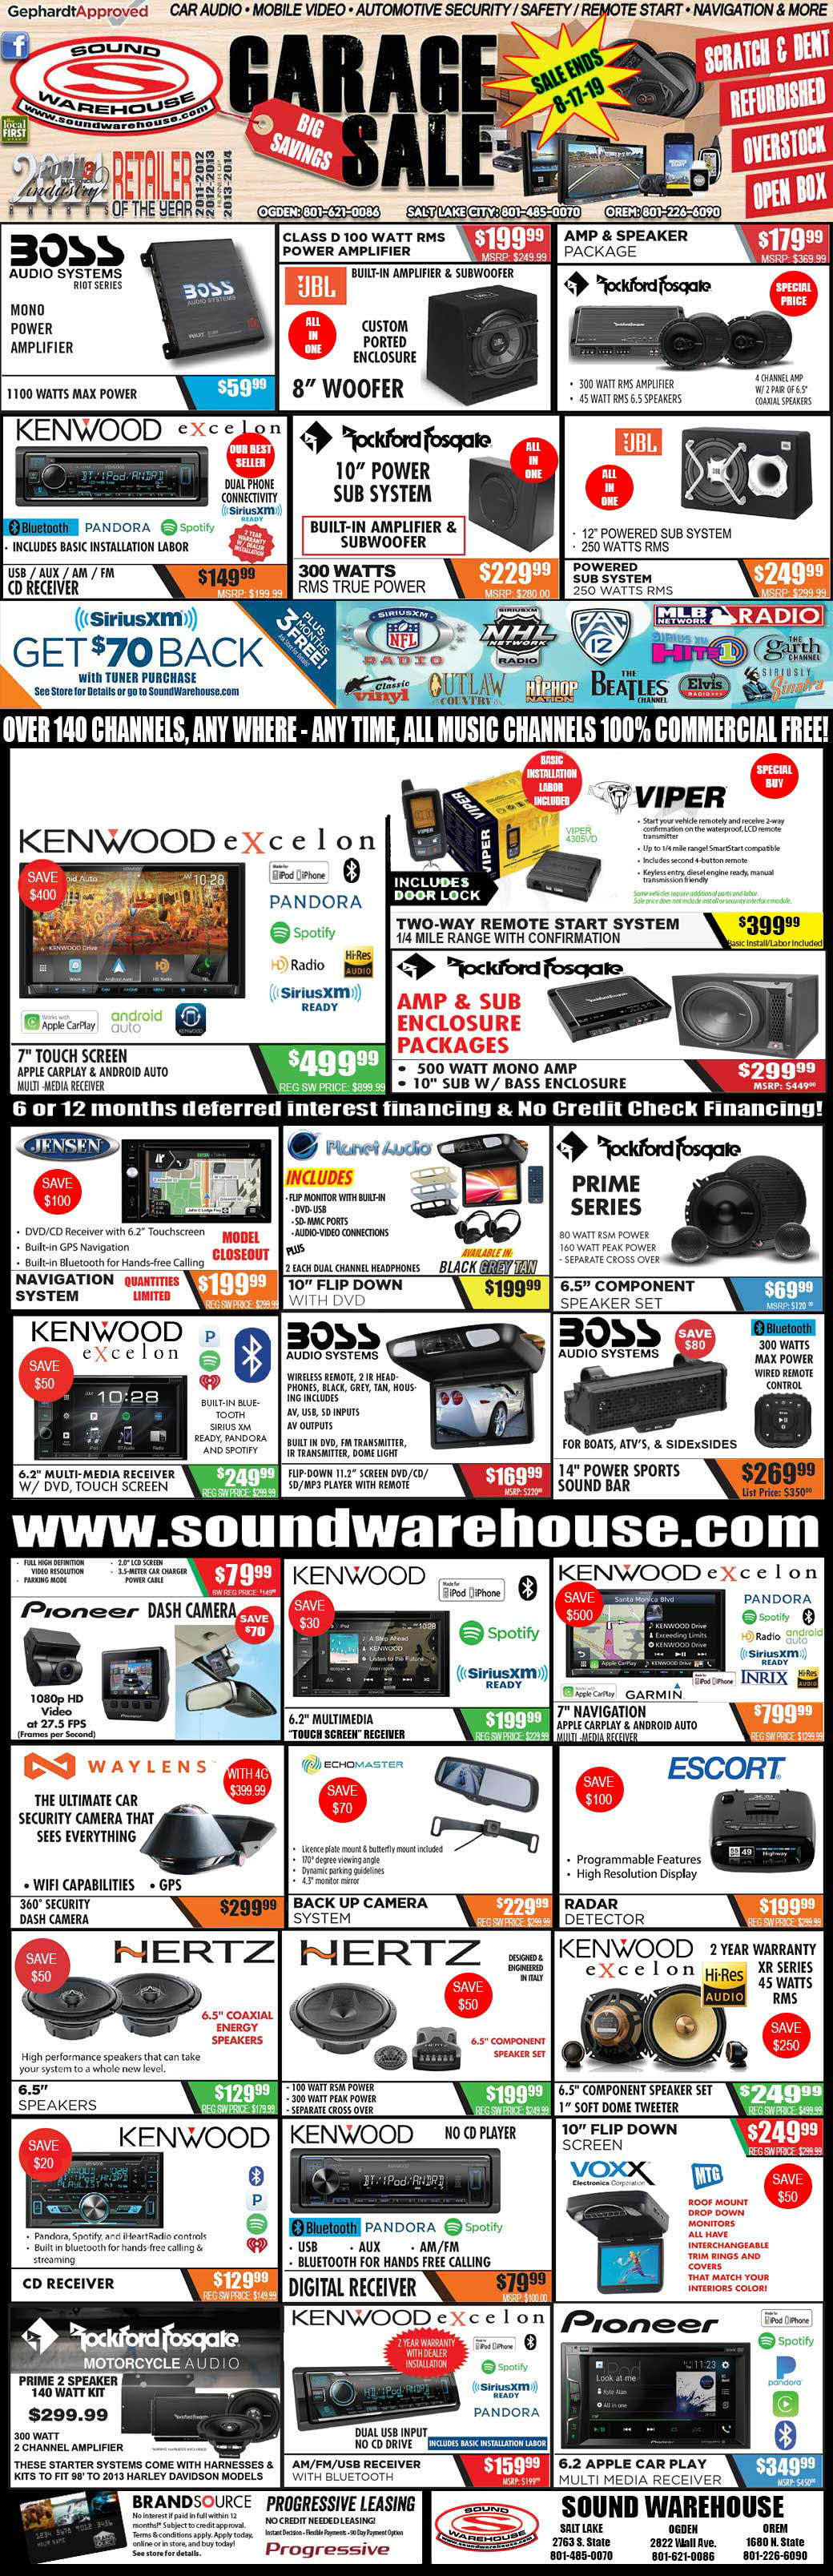 Deals & Closeouts - Sound Warehouse Utah